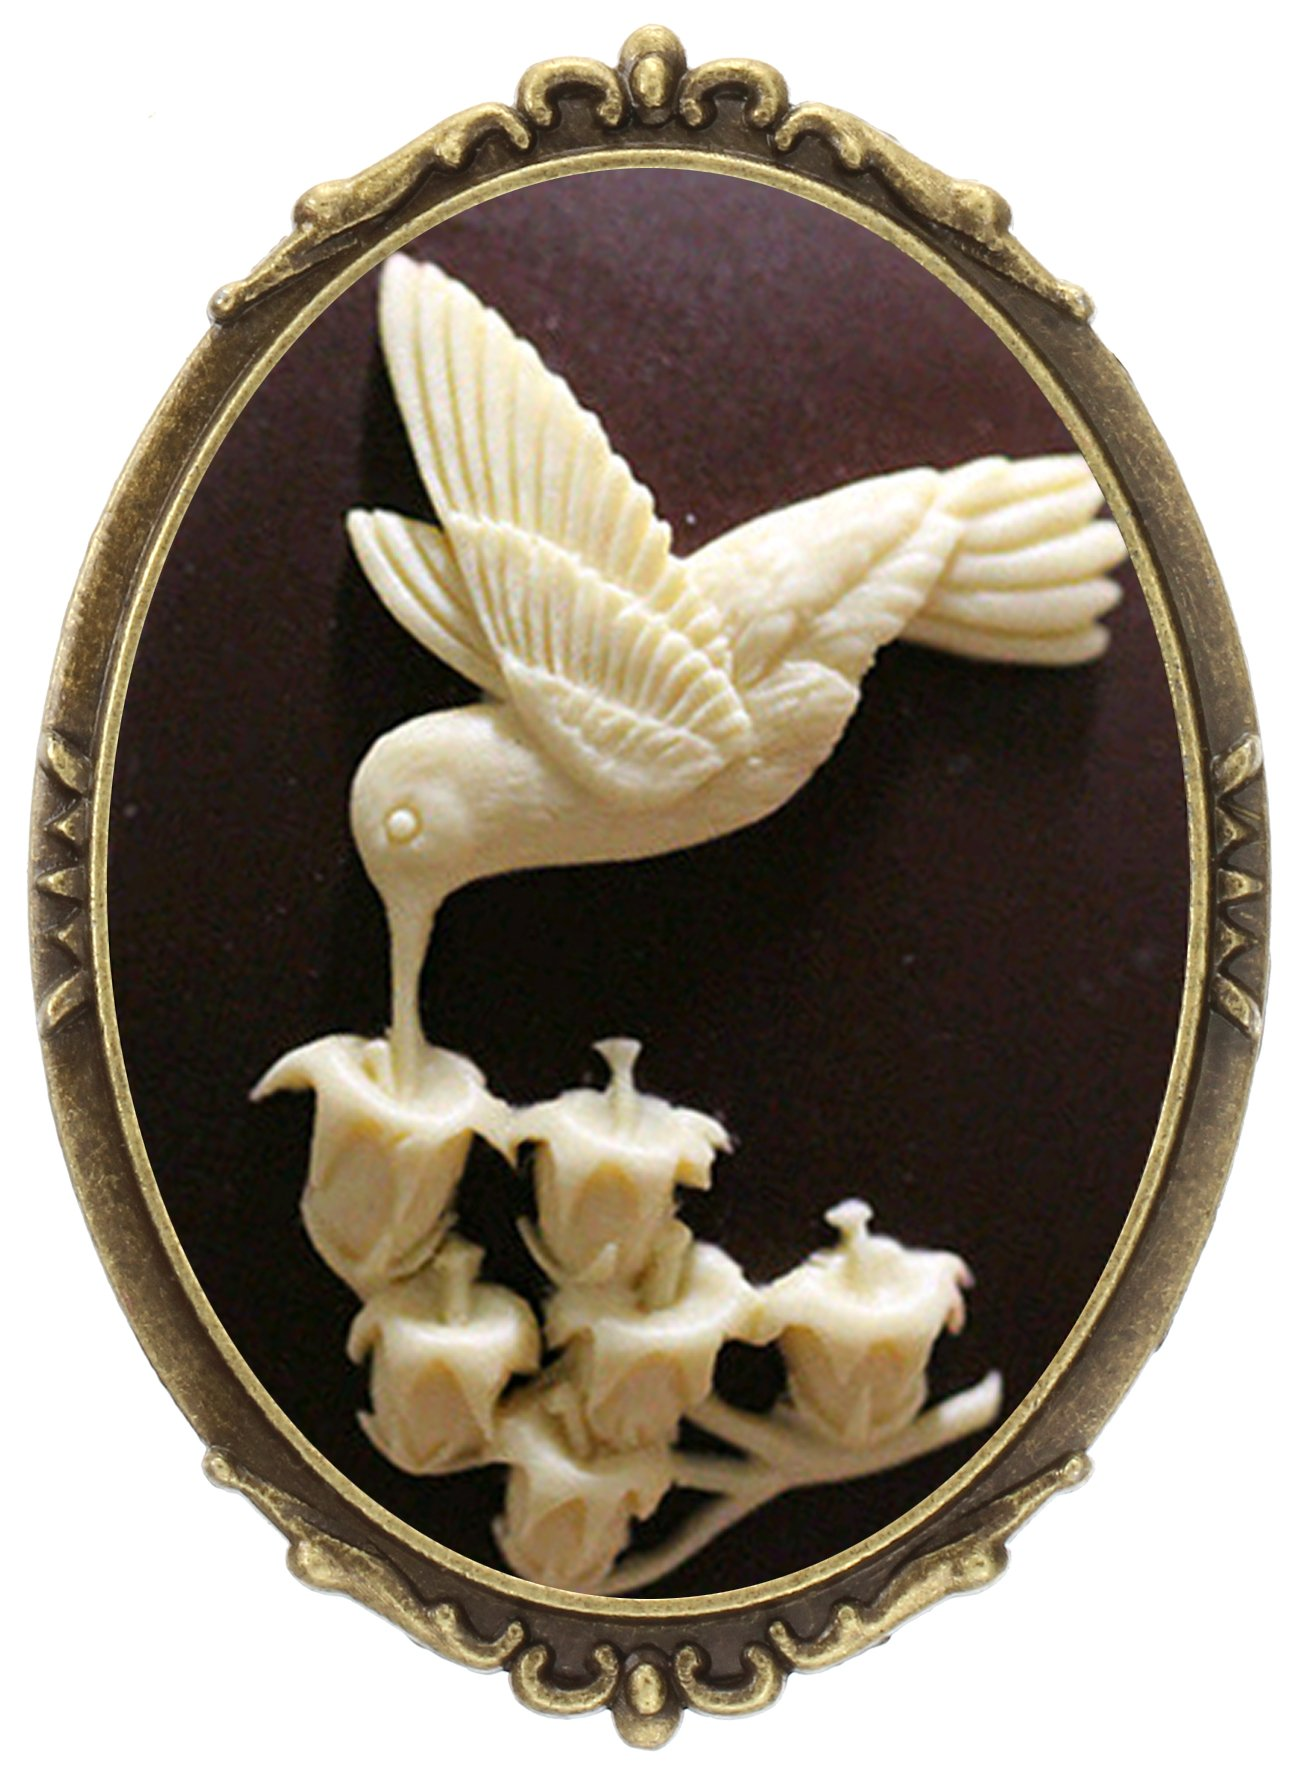 Hummingbird Brooch Pin Shield Decor Antique Brass Cameo Fashion Jewelry Pouch for Gift